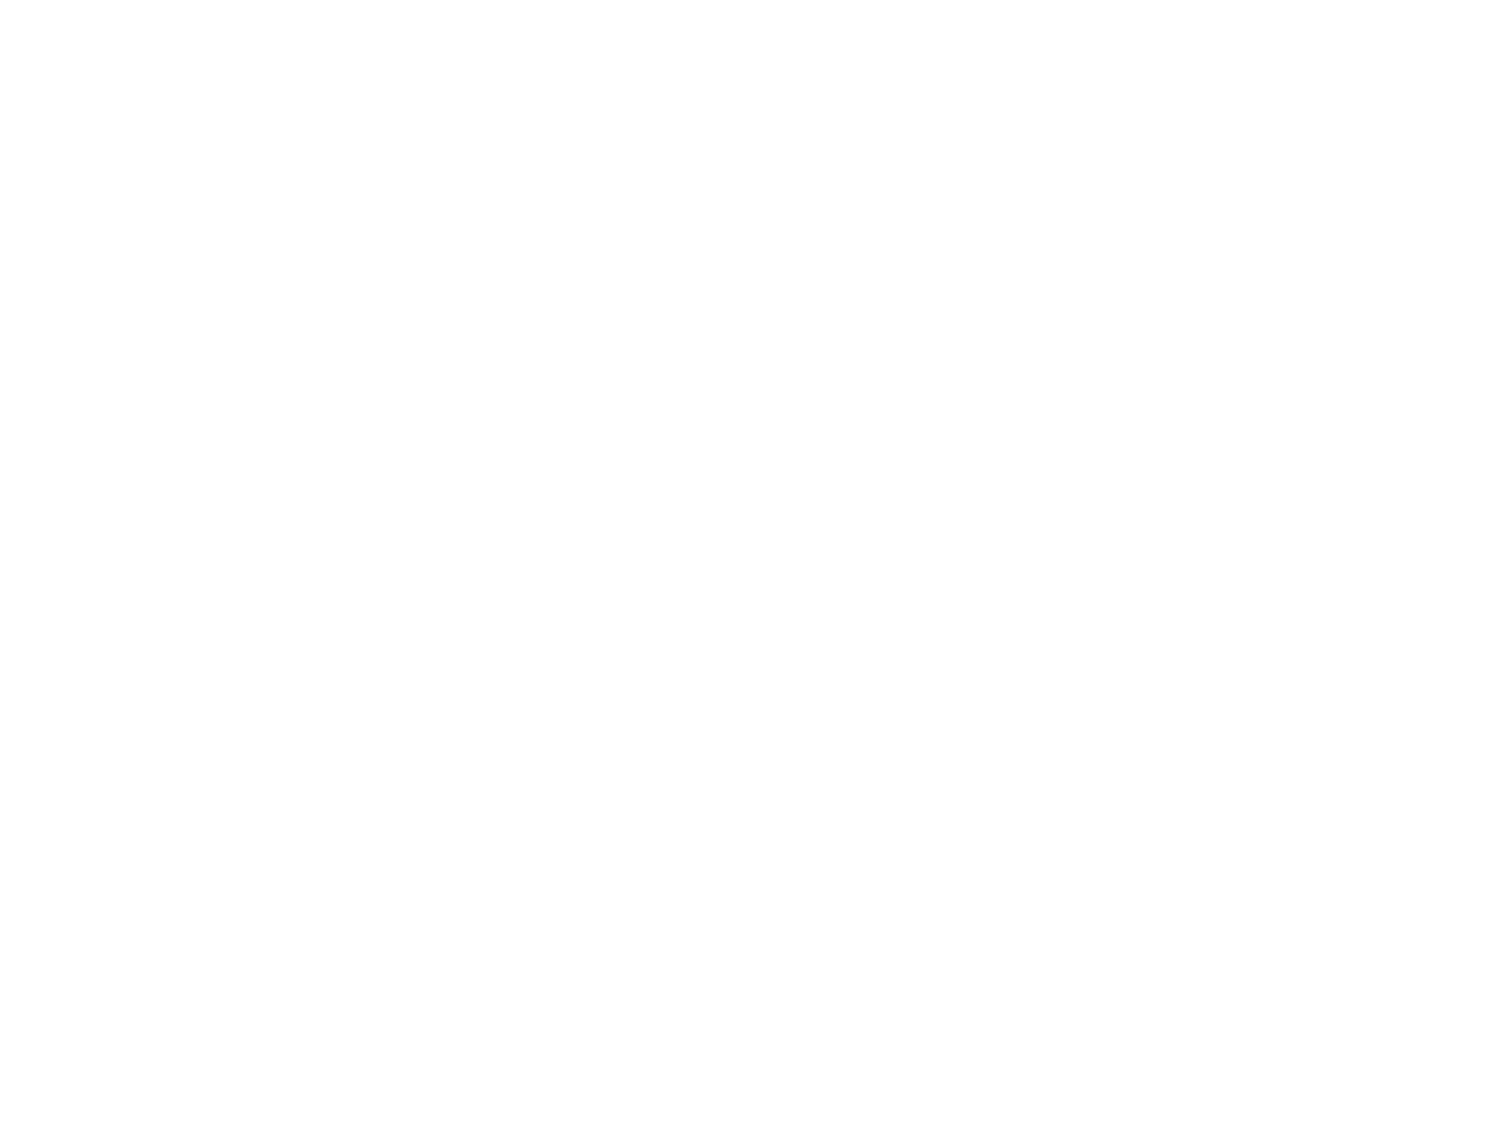 Mission City Travel